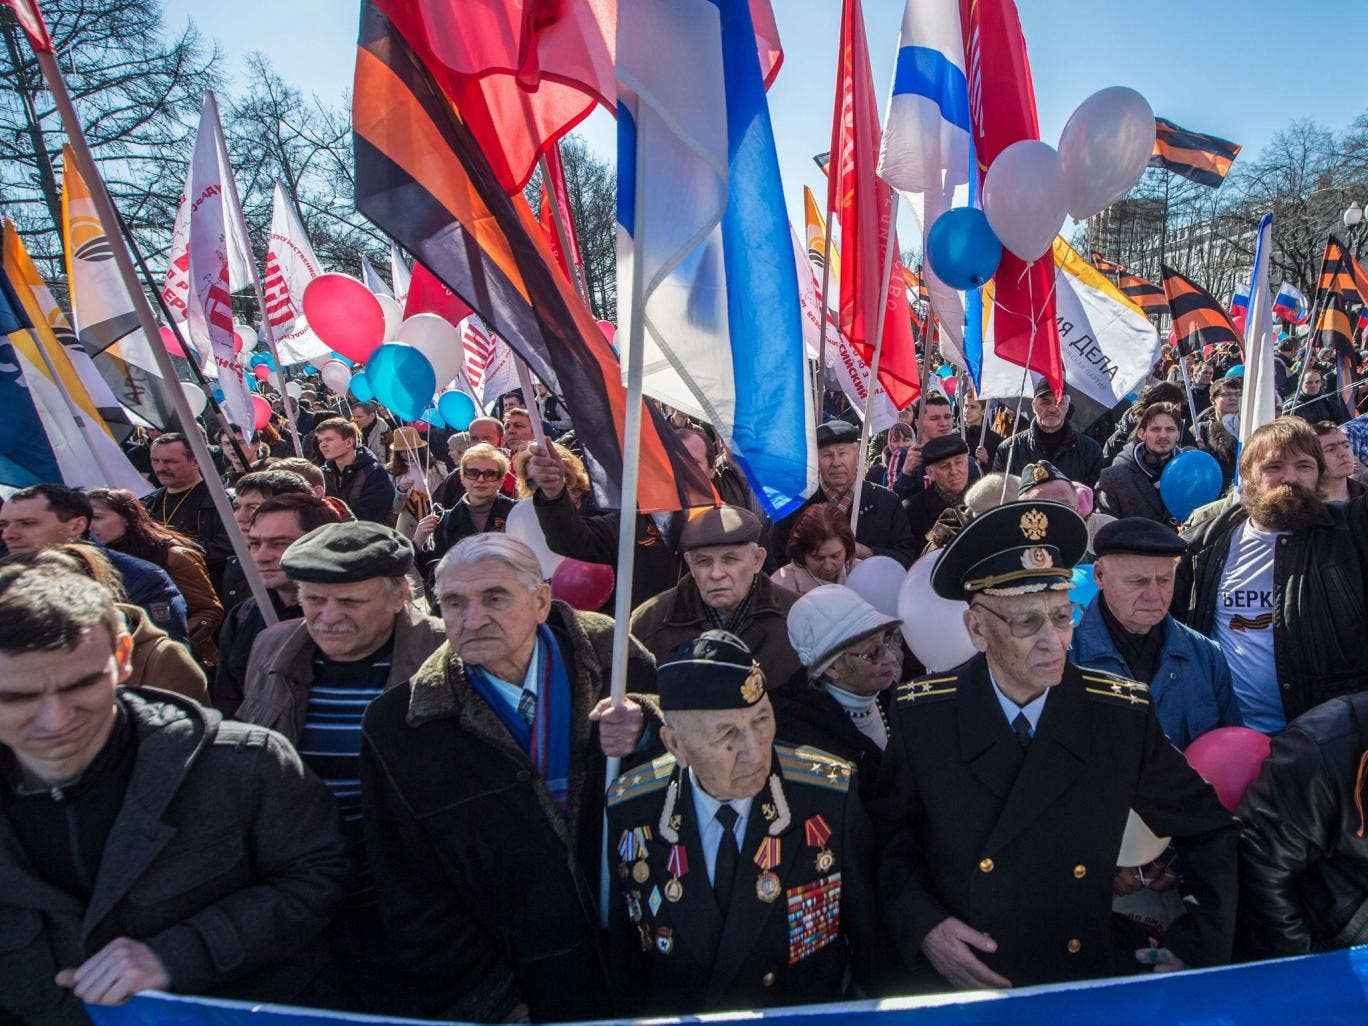 Activists in Moscow support ethnic Russians in Crimea – the Ukrainian Foreign Minister has said the country considers the confrontation to be 'almost a war'